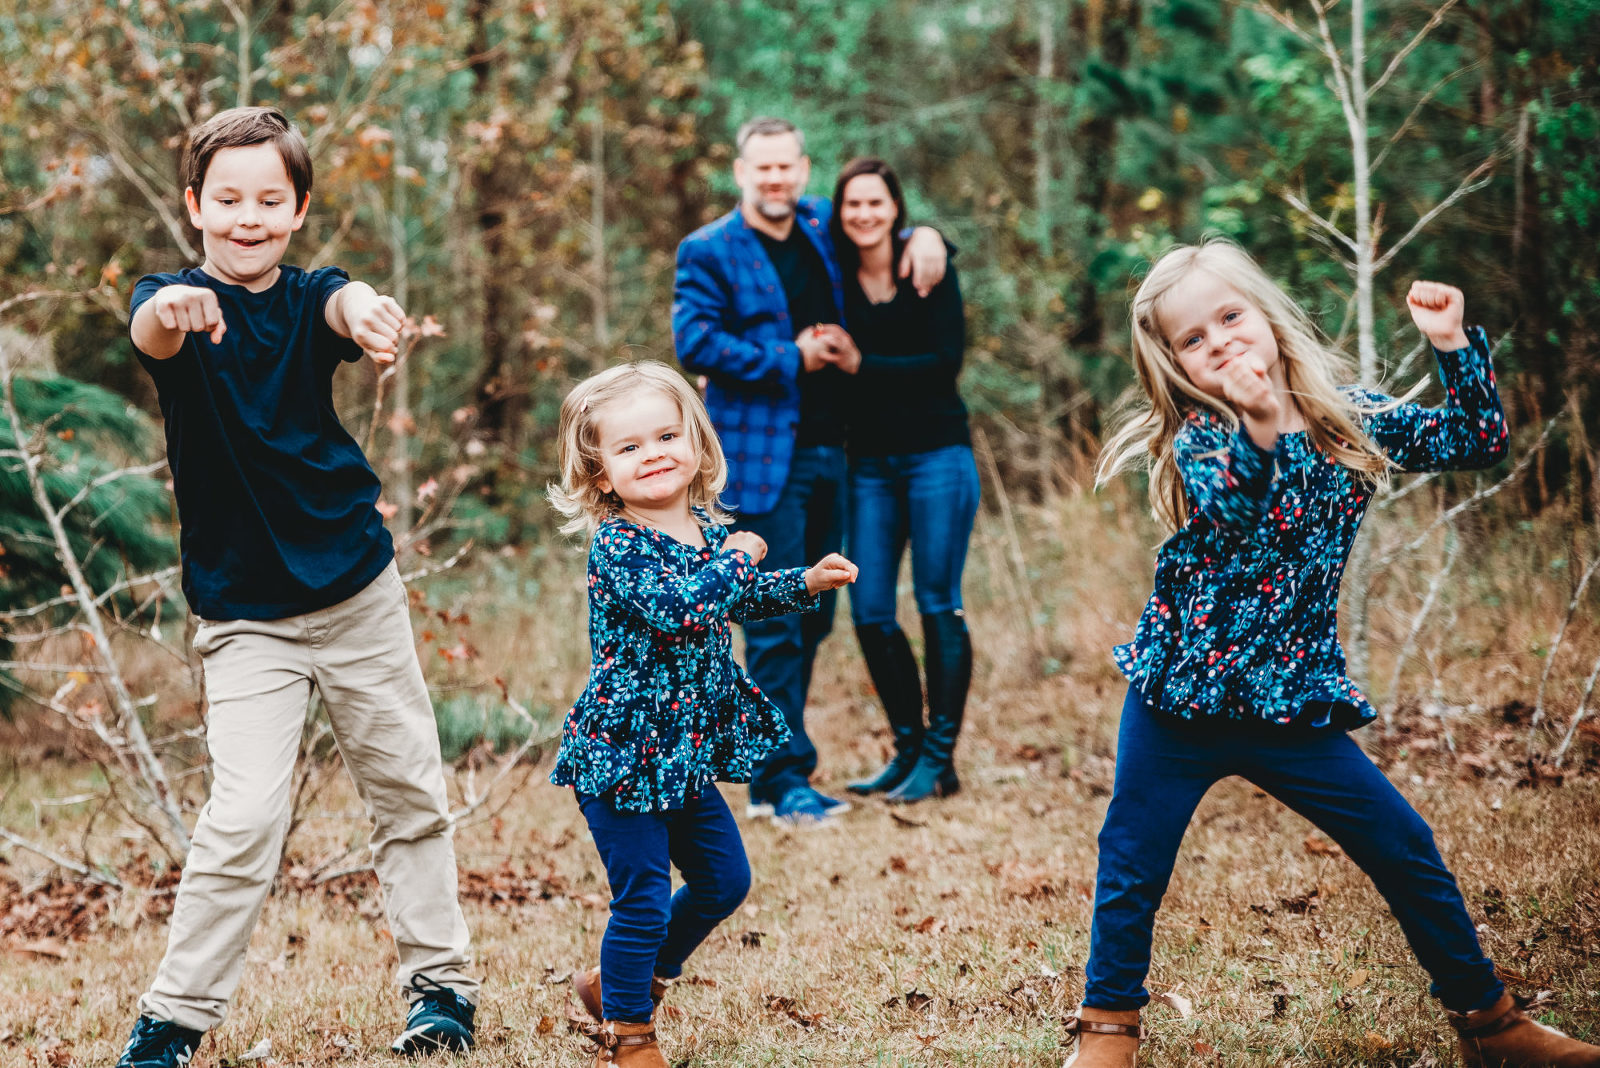 jacksonville family photo session with kids dancing